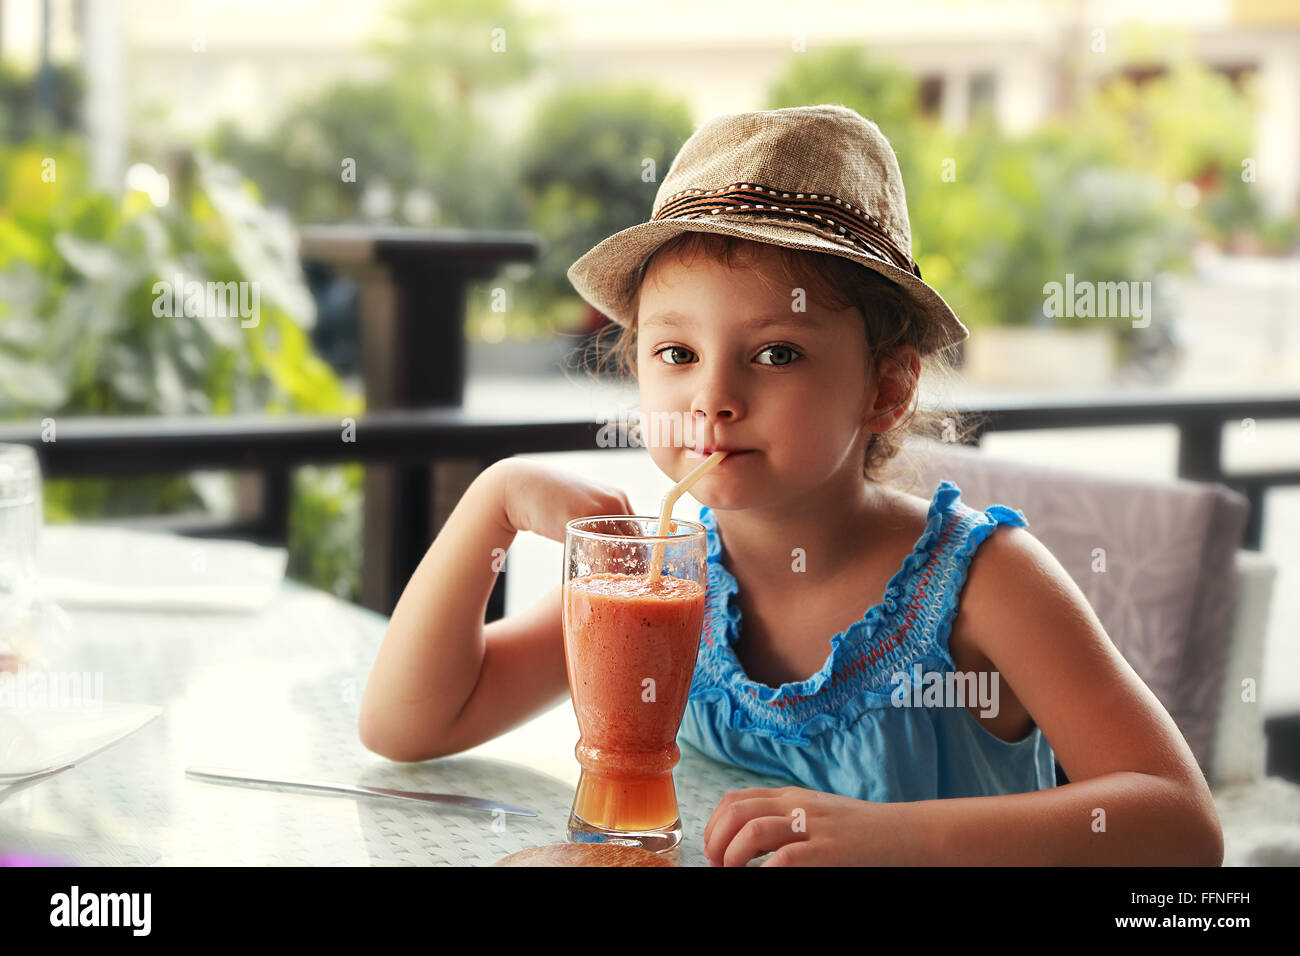 Fun kid girl in fashion hat smoothie potable jus dans street restaurant Photo Stock